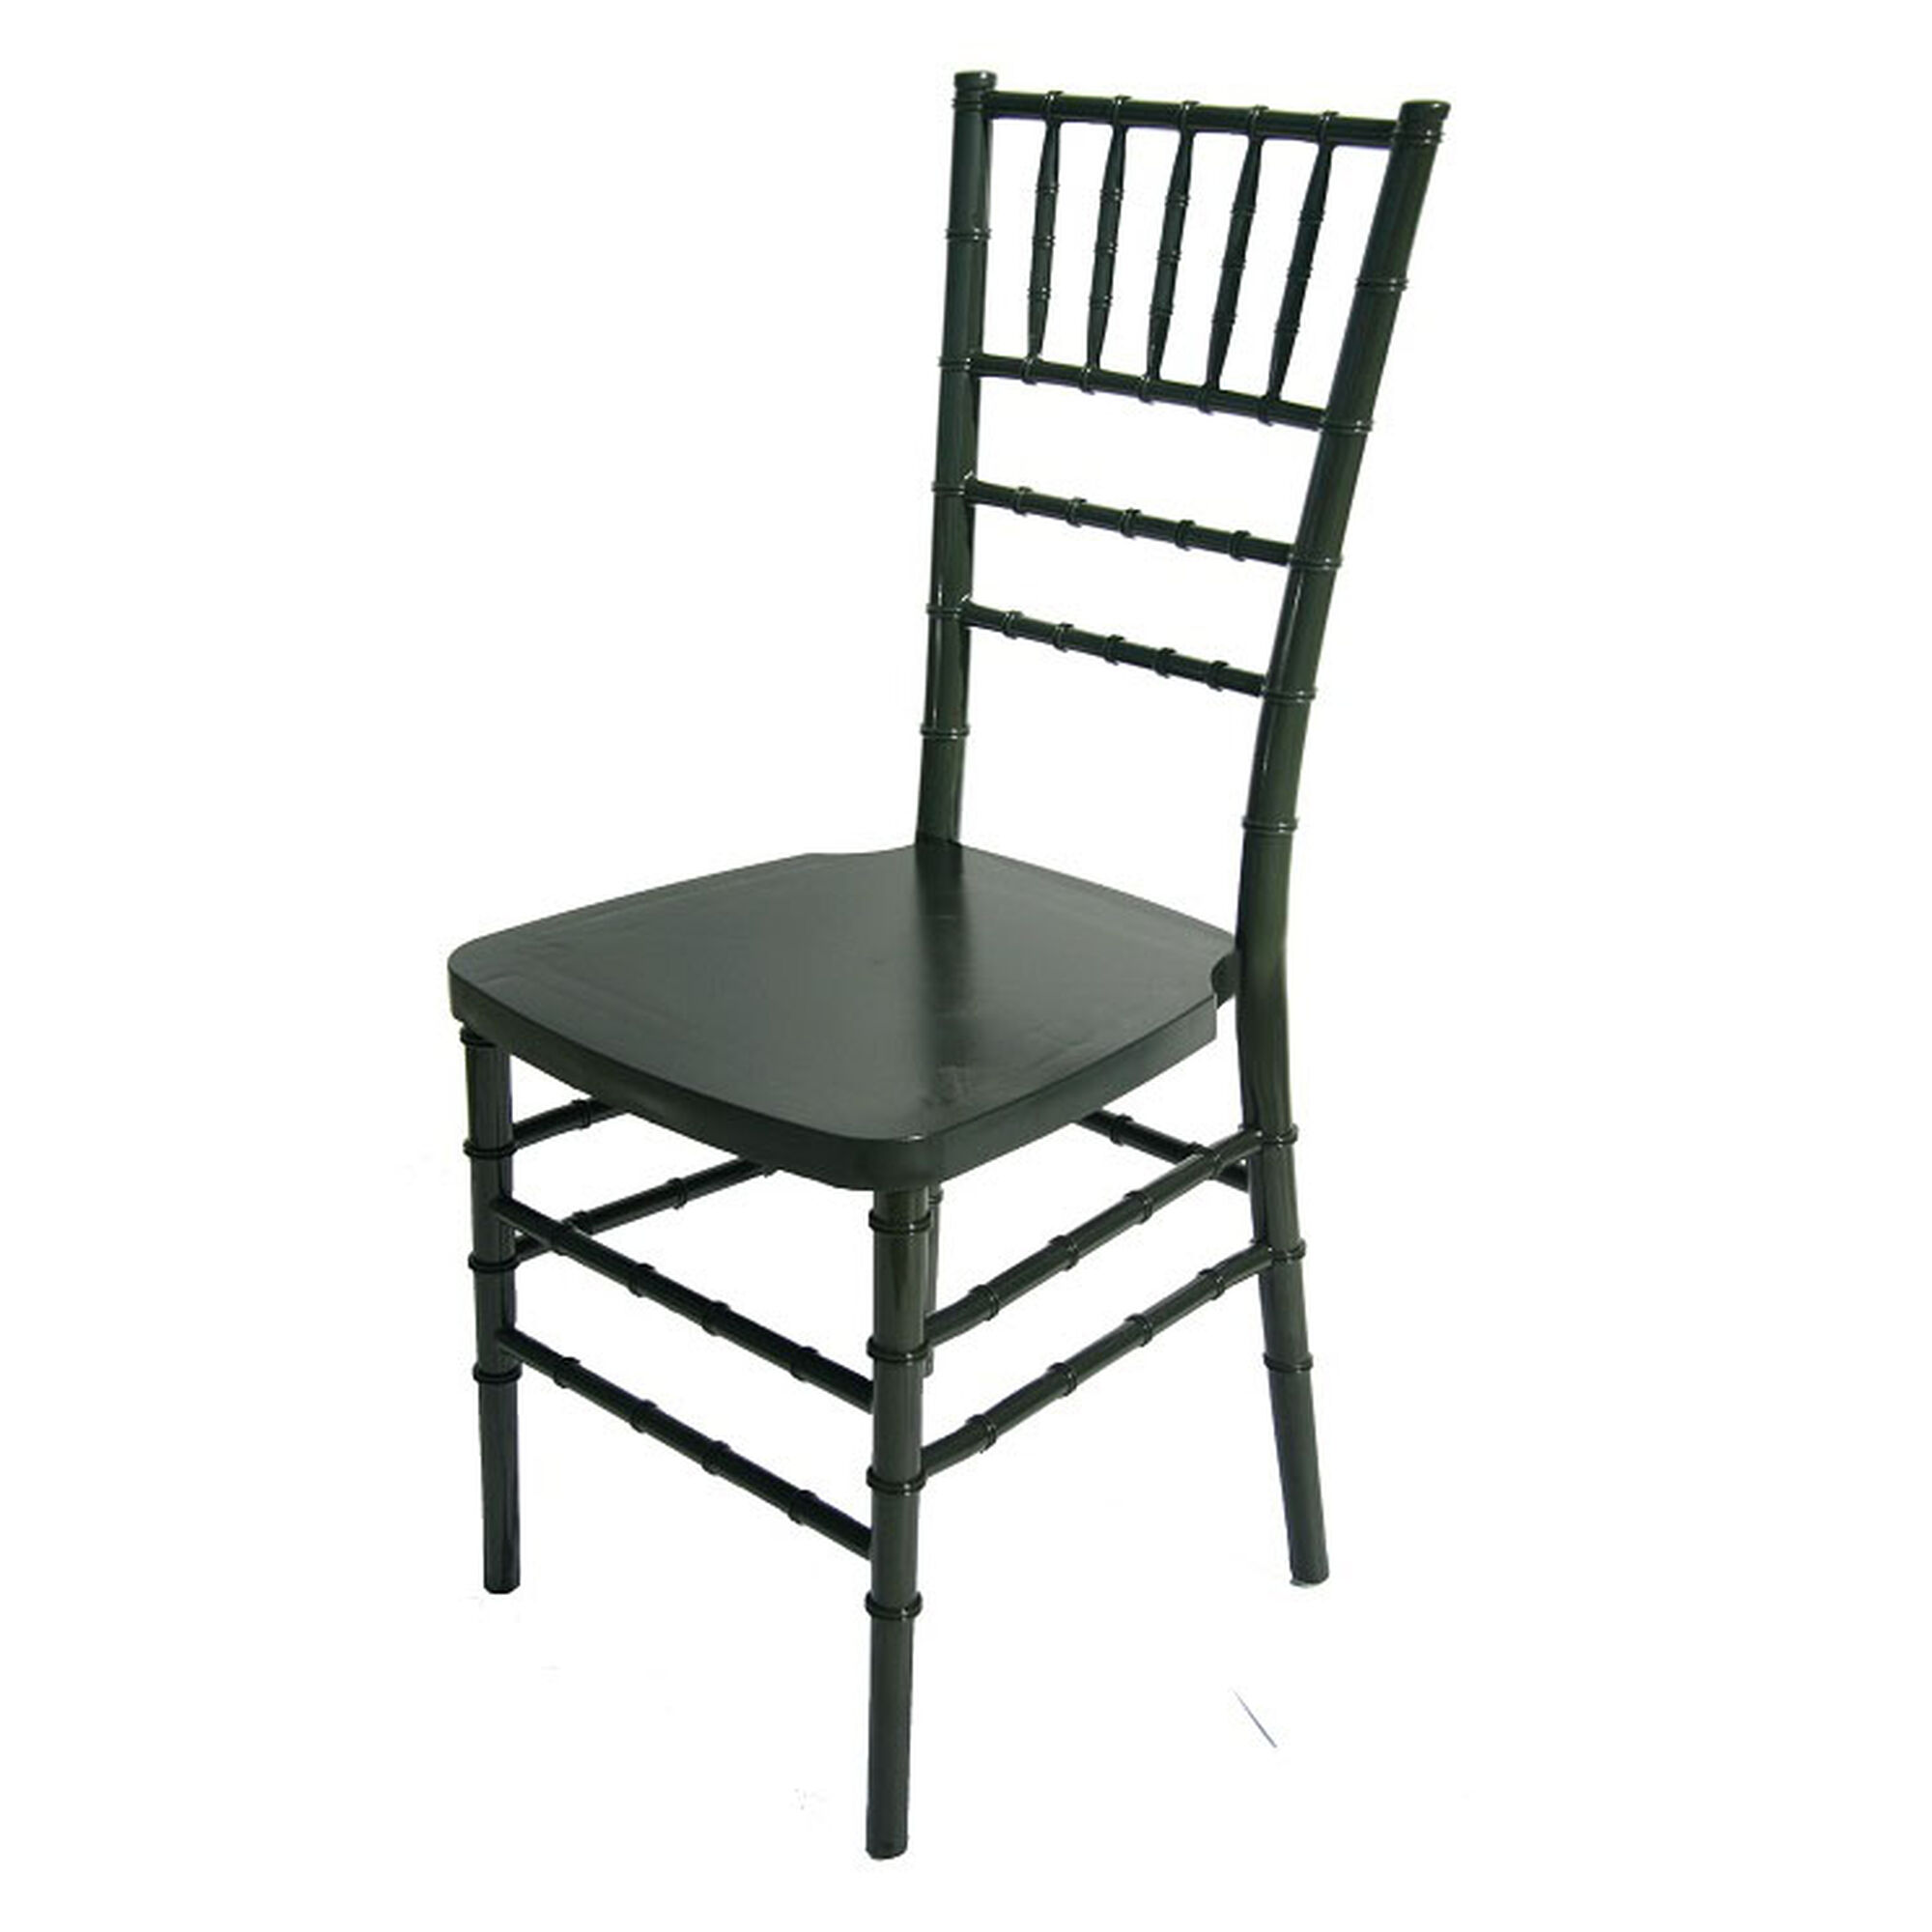 charcoal chivari products chiavari main commercial seating chair csp image chairs to rb cgrey grey hover zoom resin